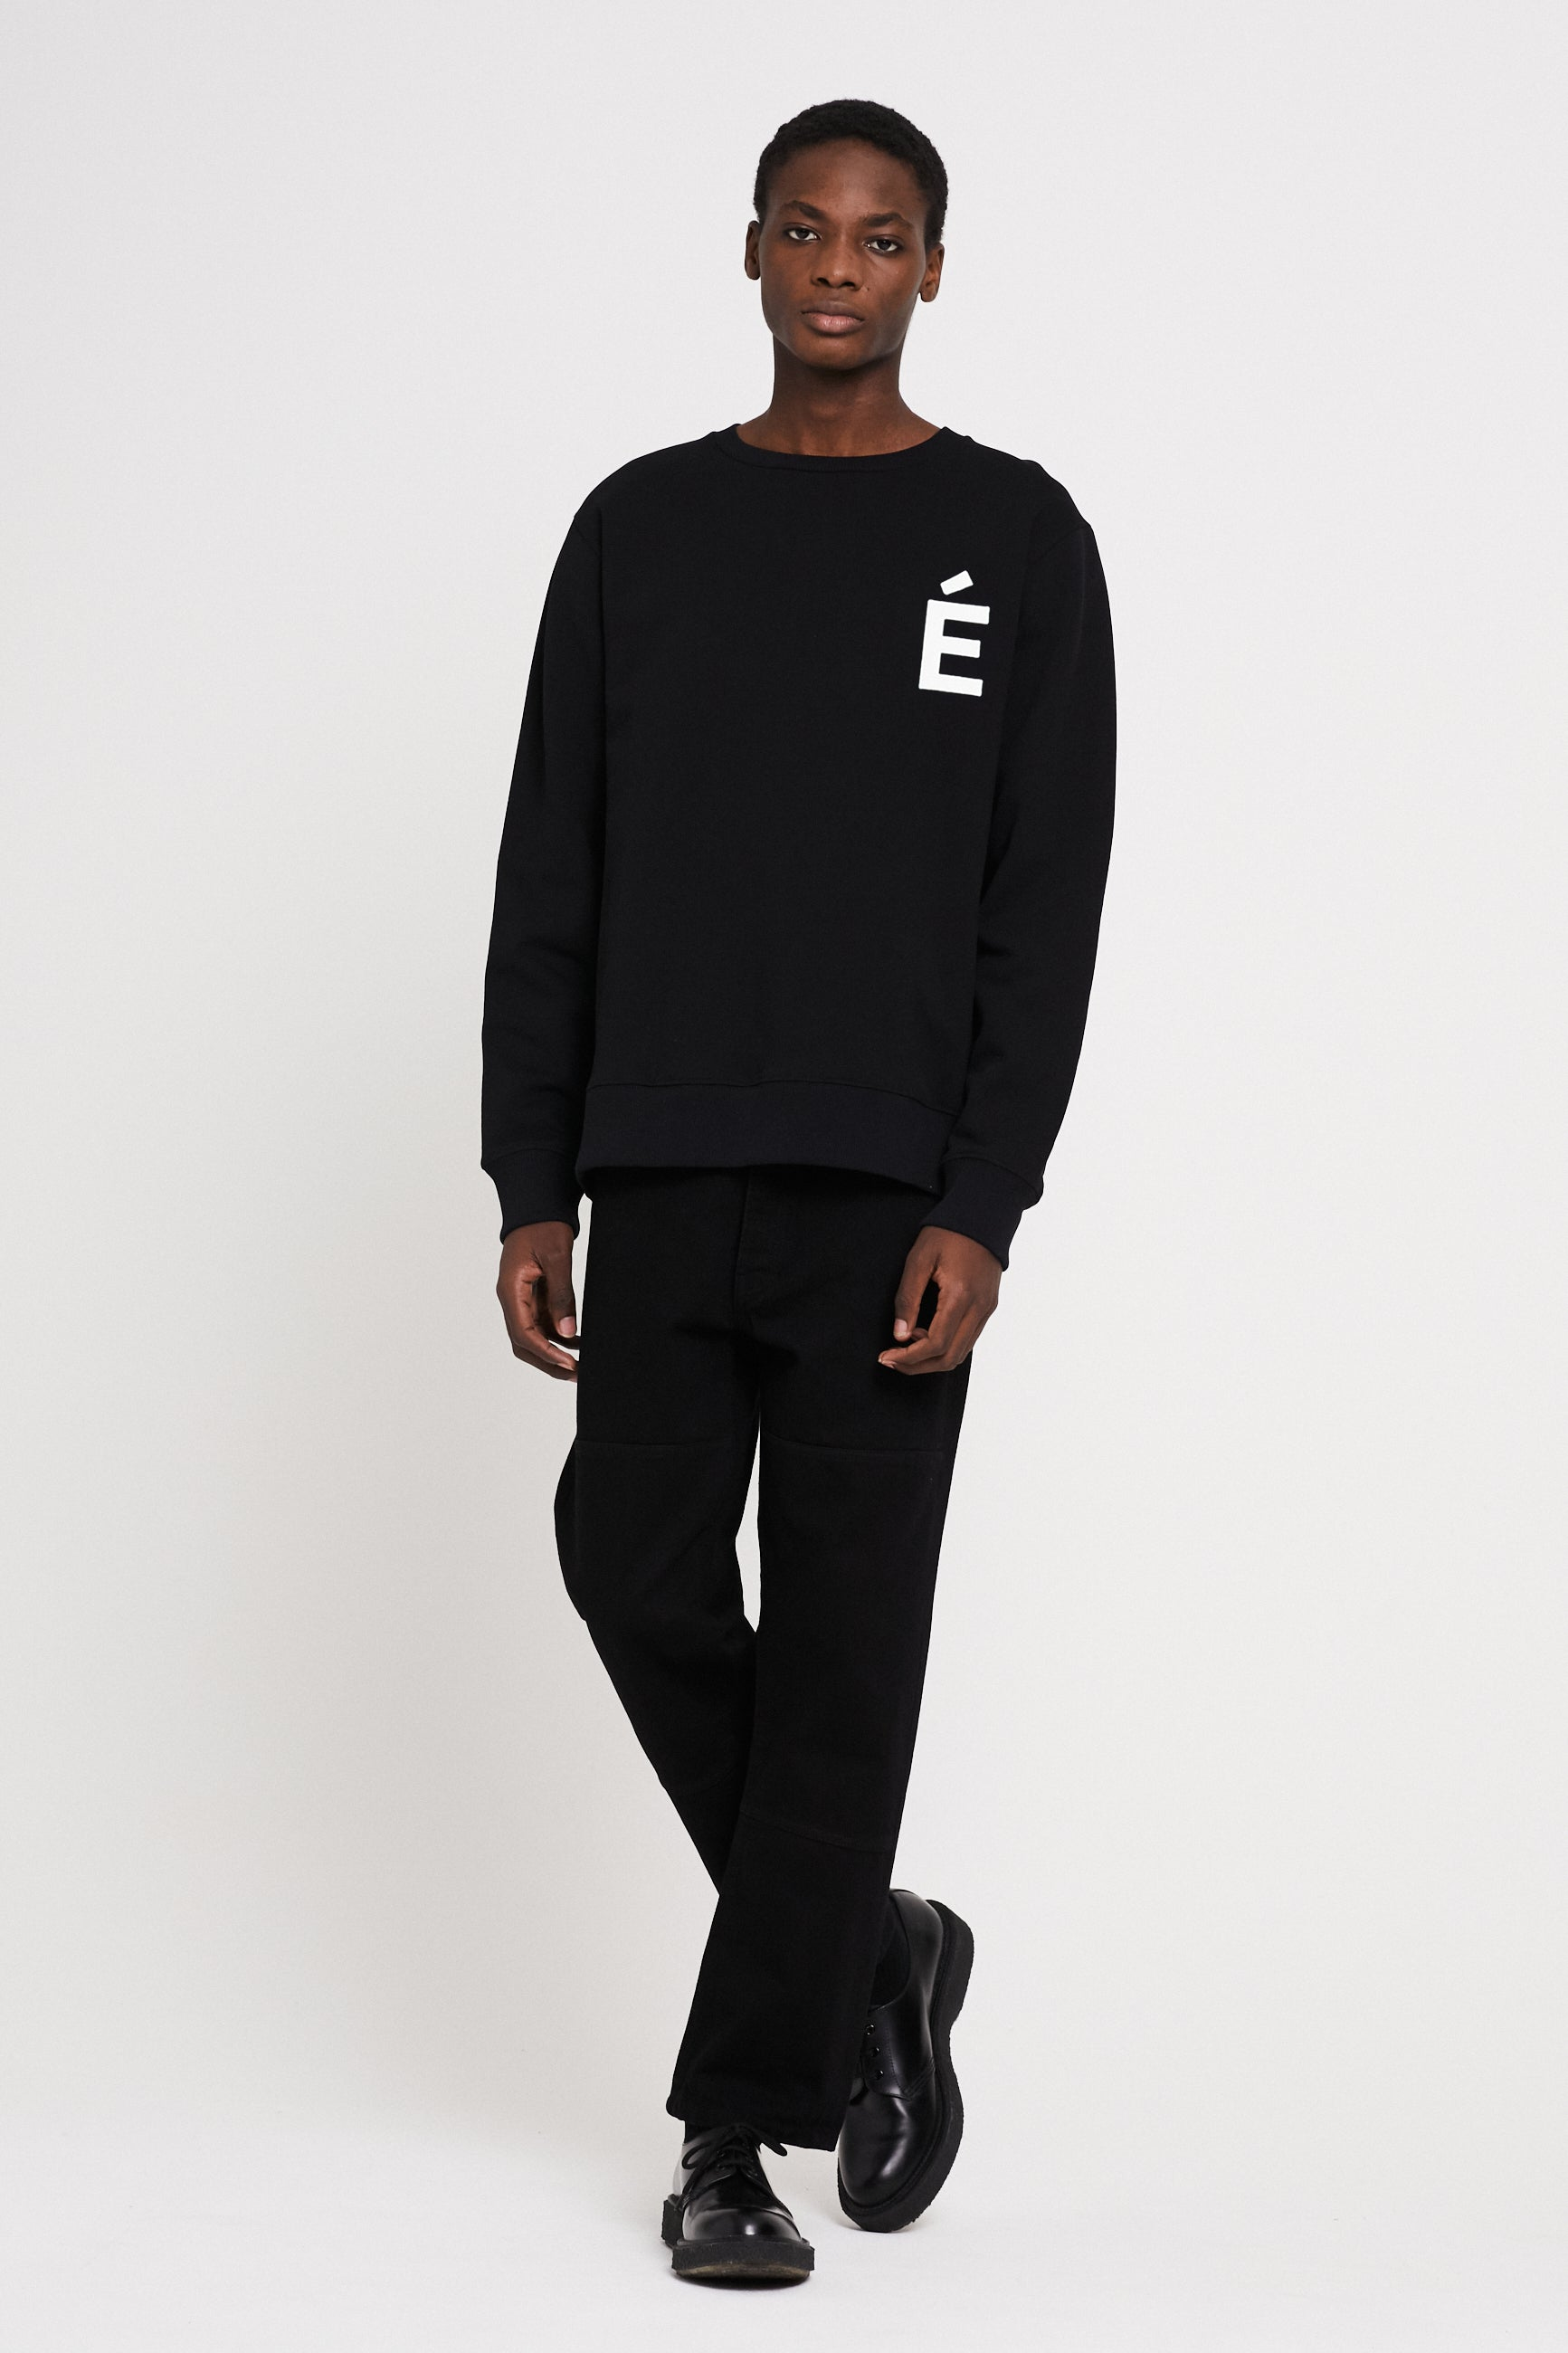 Études Story Patch Black Sweatshirt 3